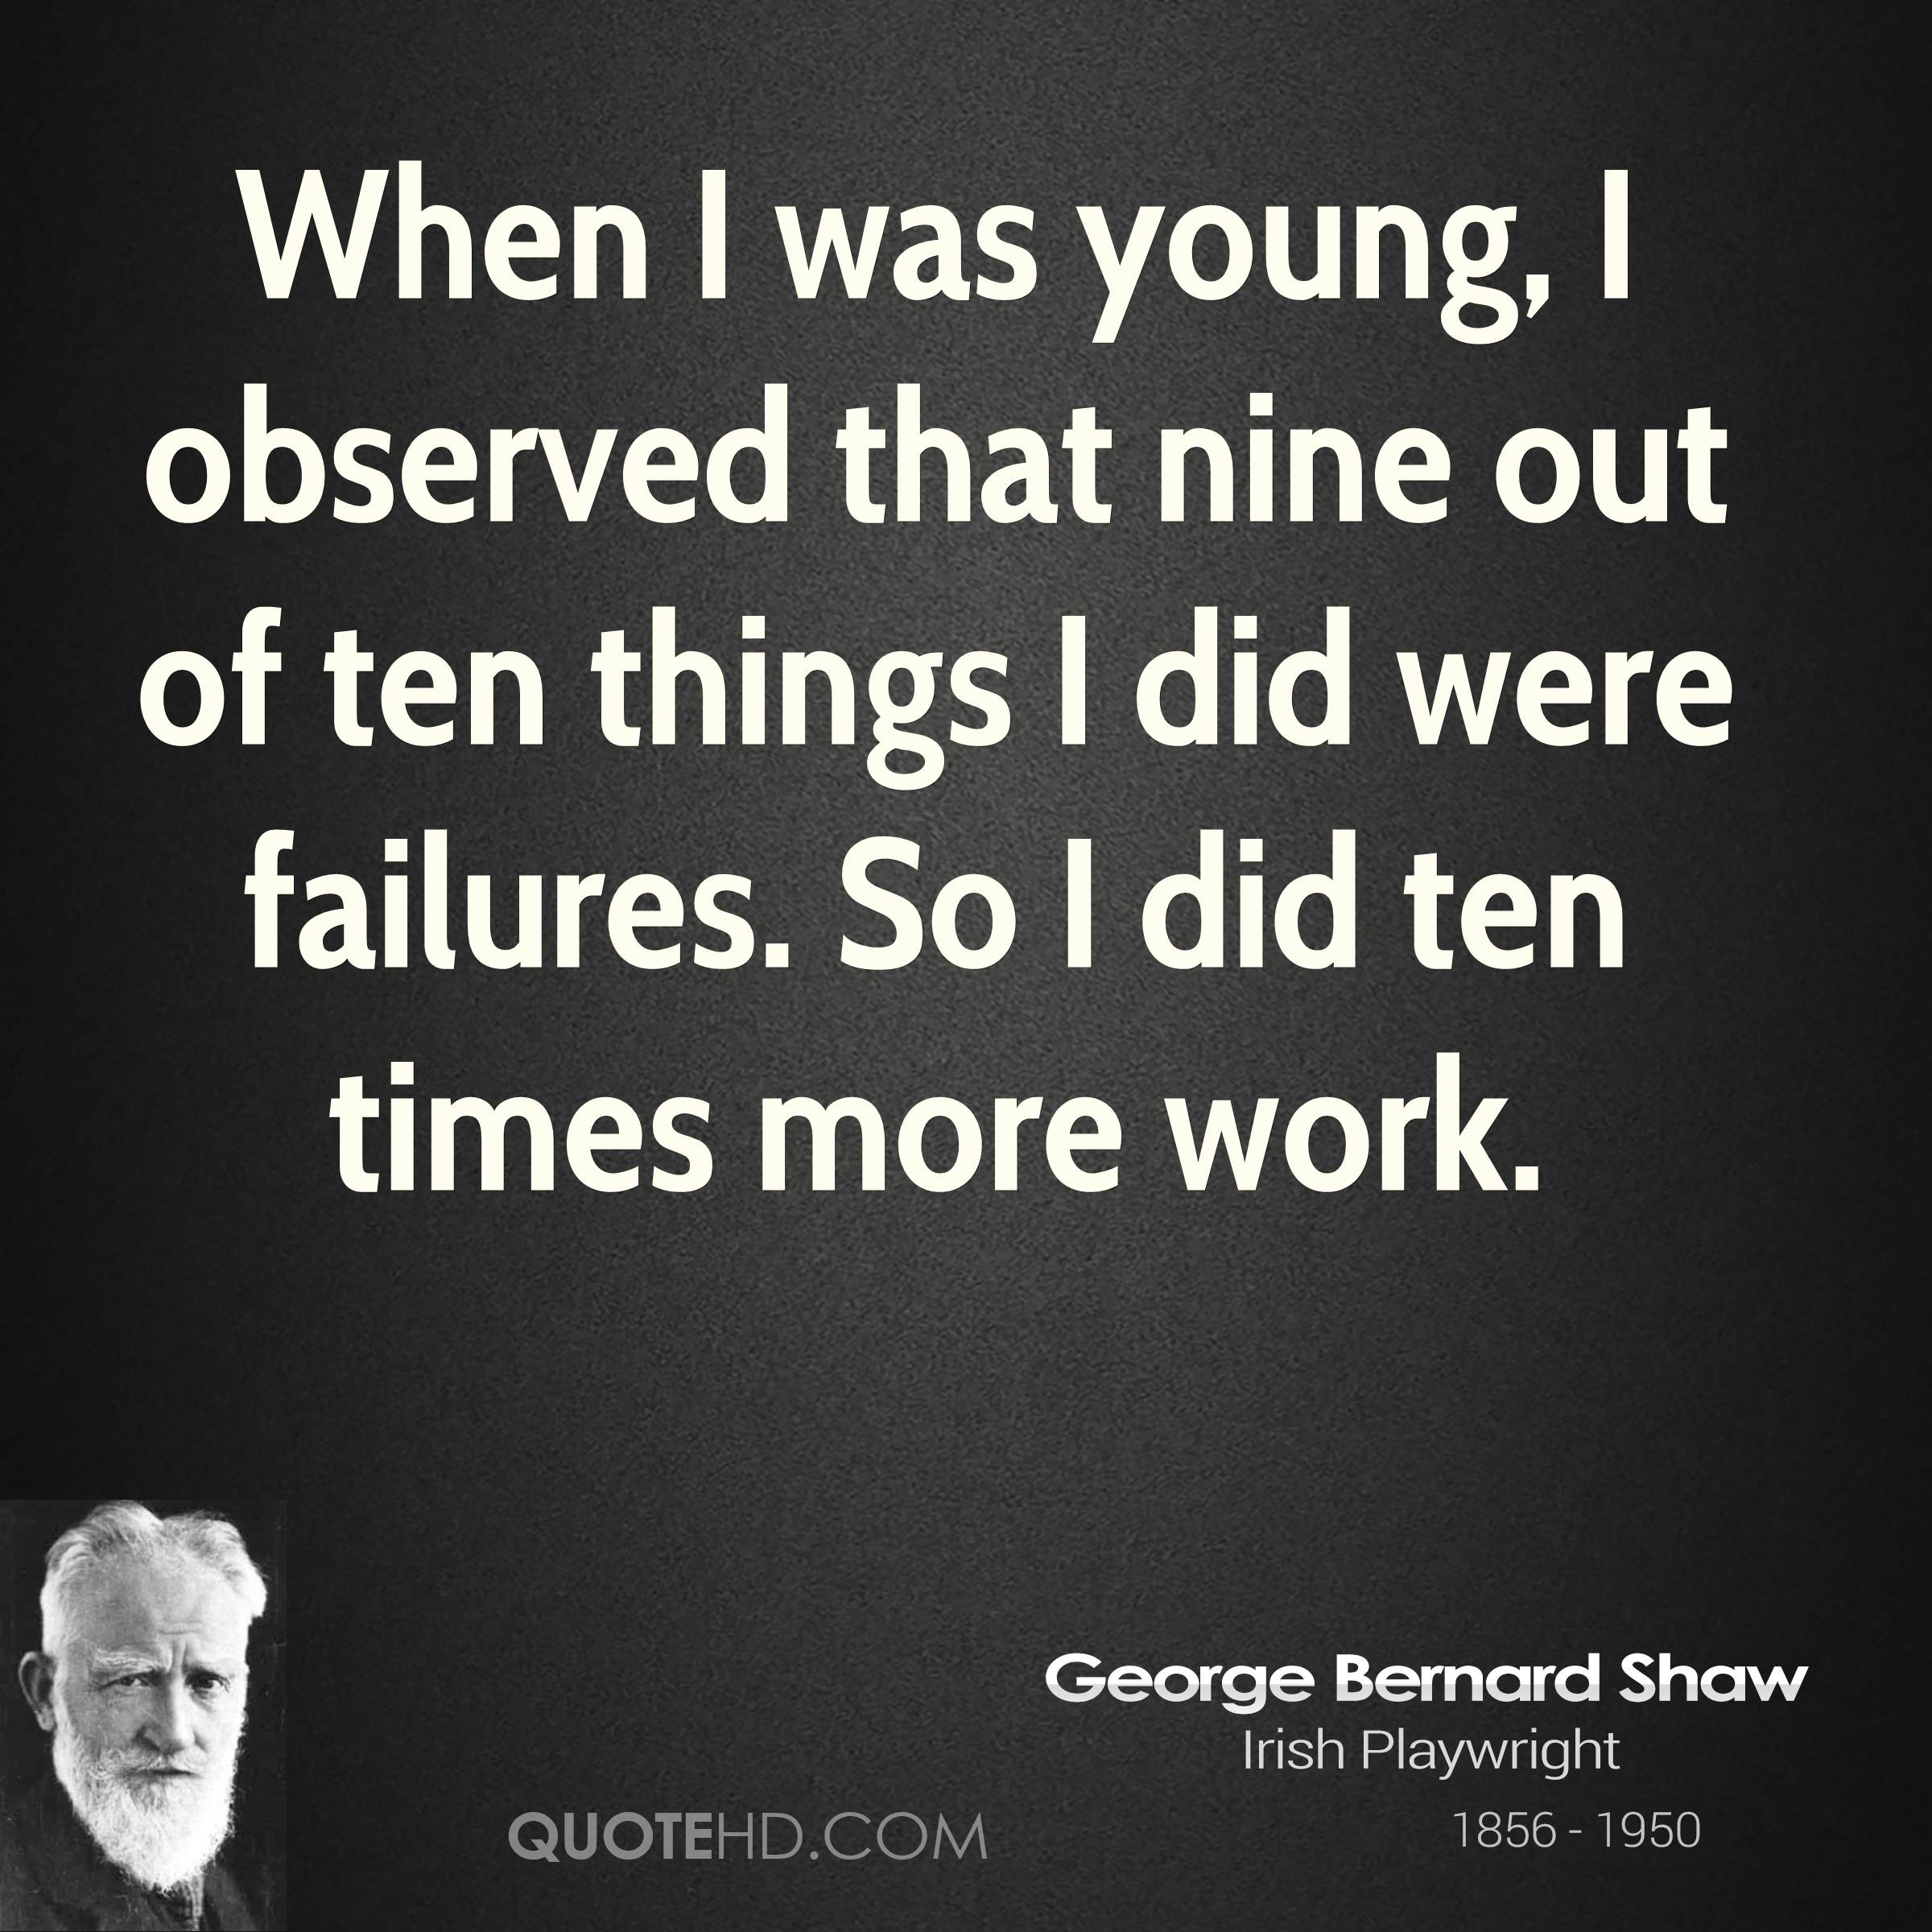 When I was young, I observed that nine out of ten things I did were failures. So I did ten times more work.